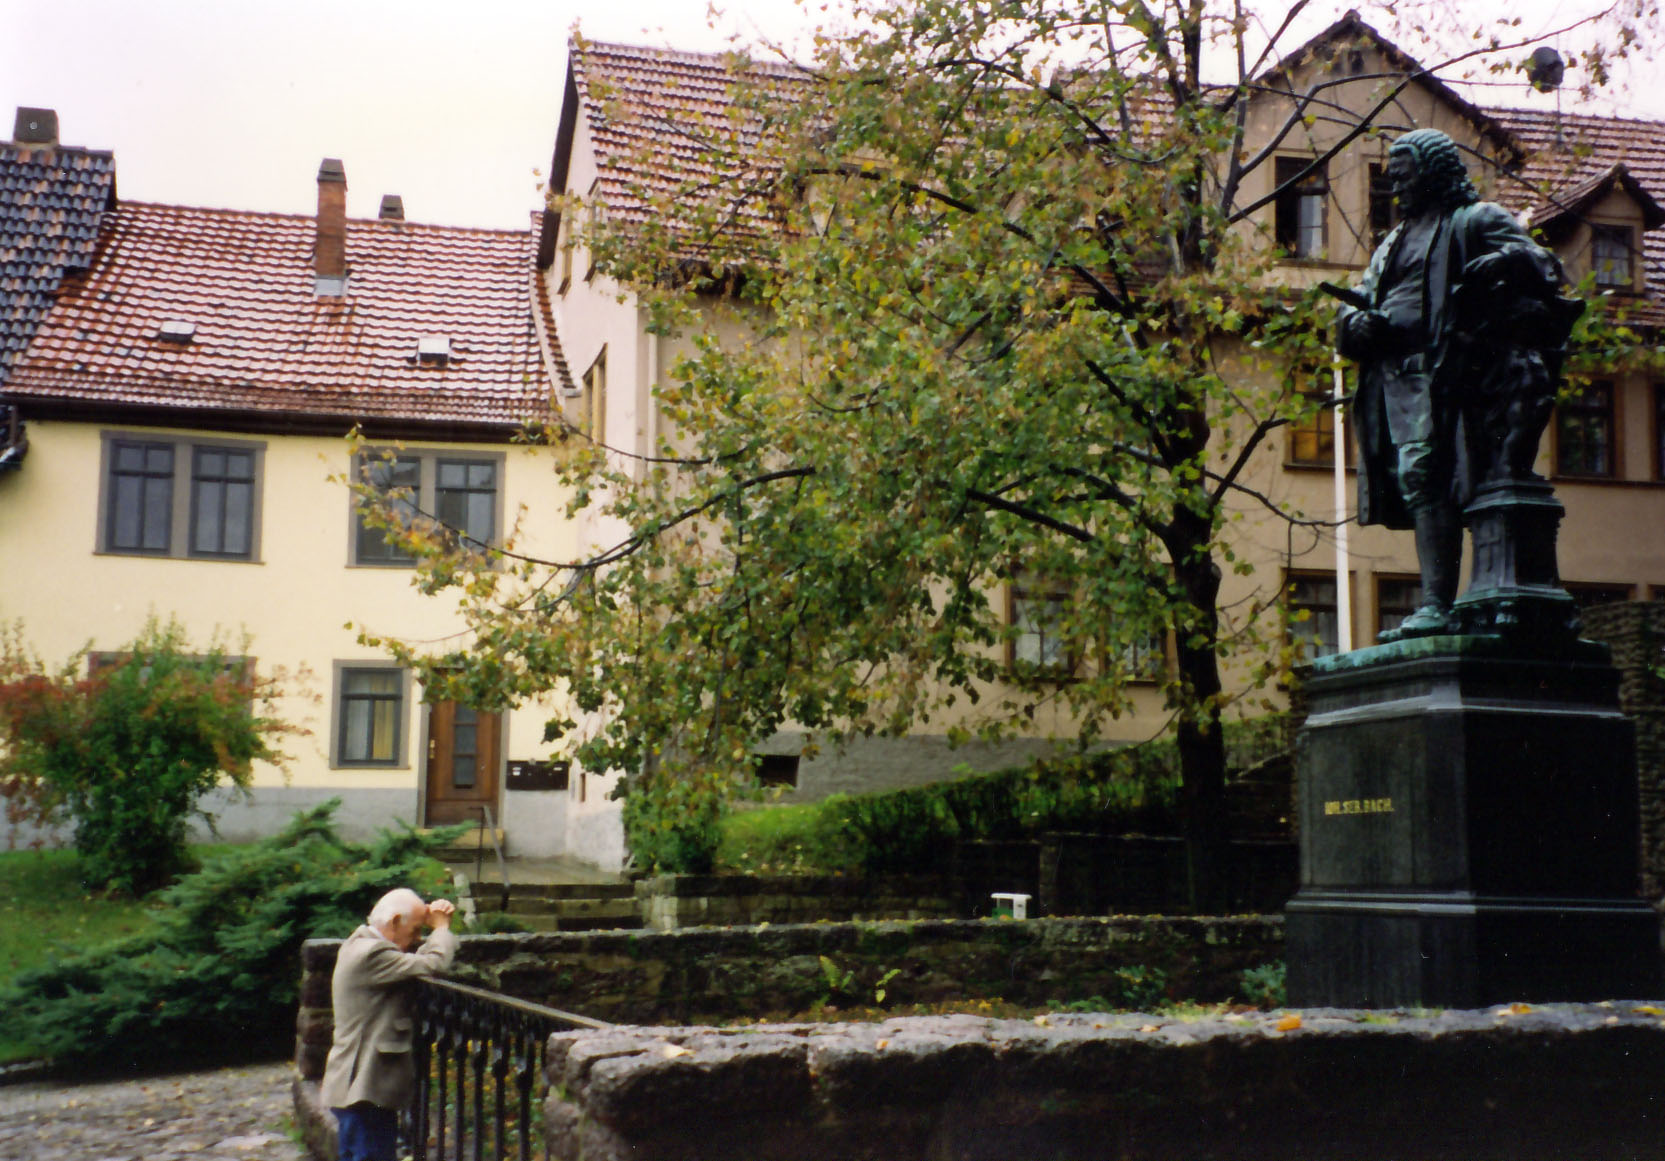 Celedonio at the home of J.S. Bach 1994